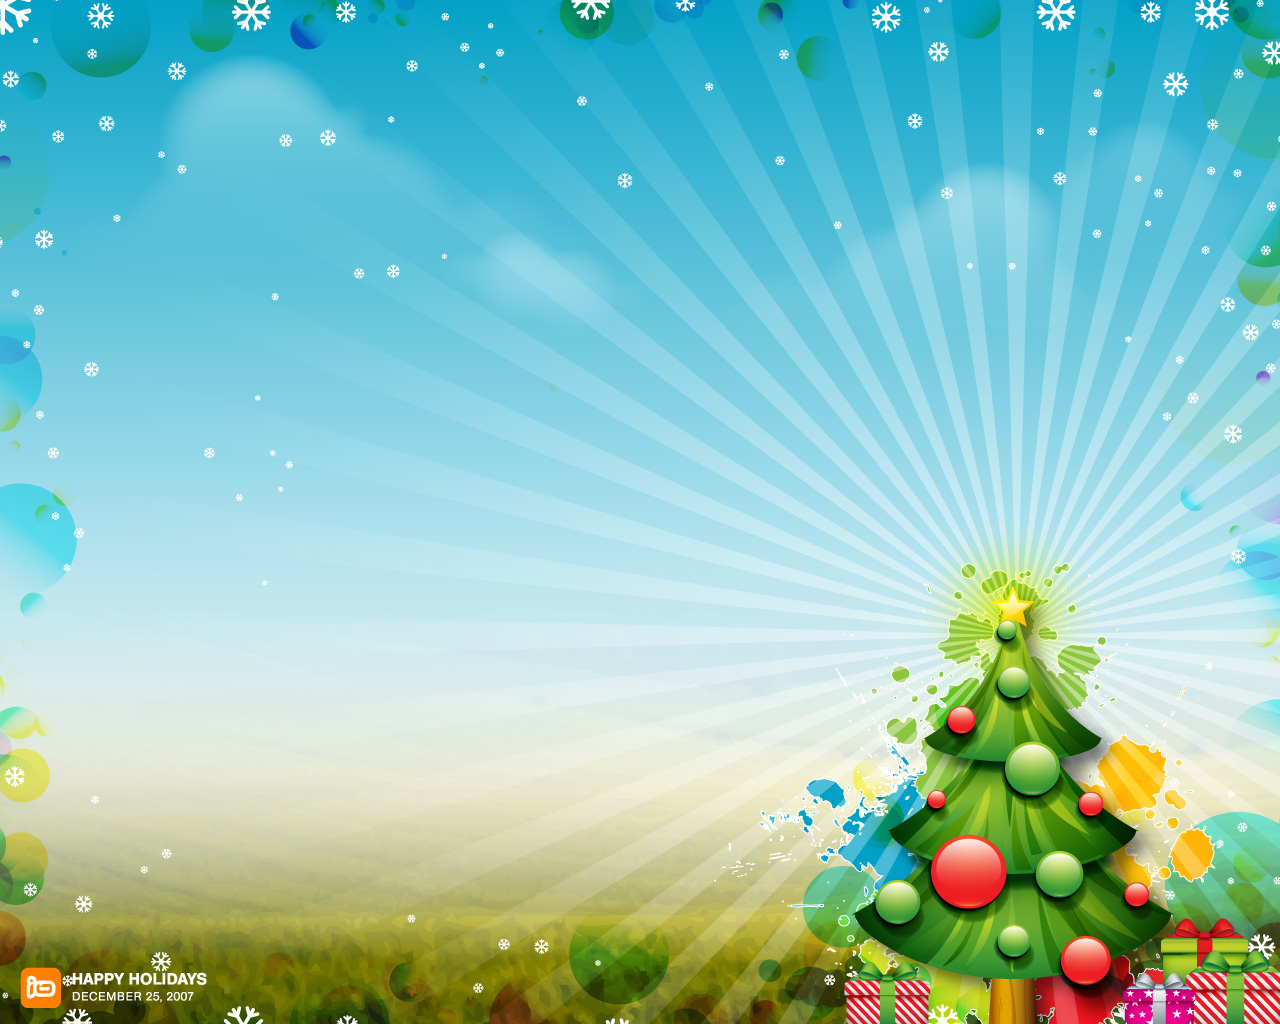 Koleksi Background Wallpaper Natal Desktop Aplikasi Software Free